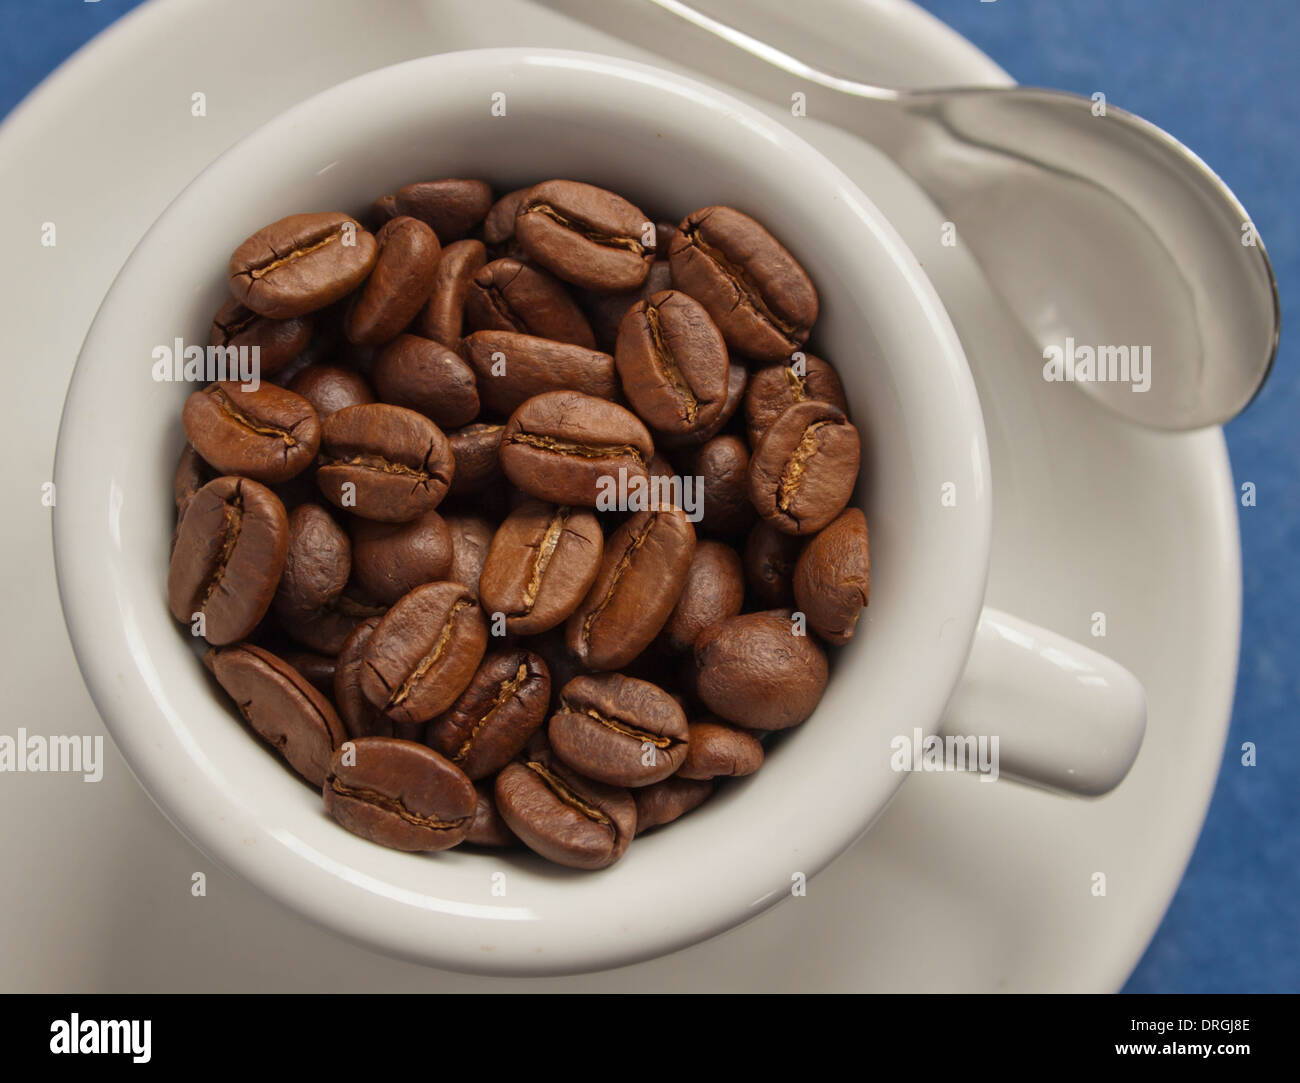 fresh arabica coffee beans in espresso cup / close-up - Stock Image